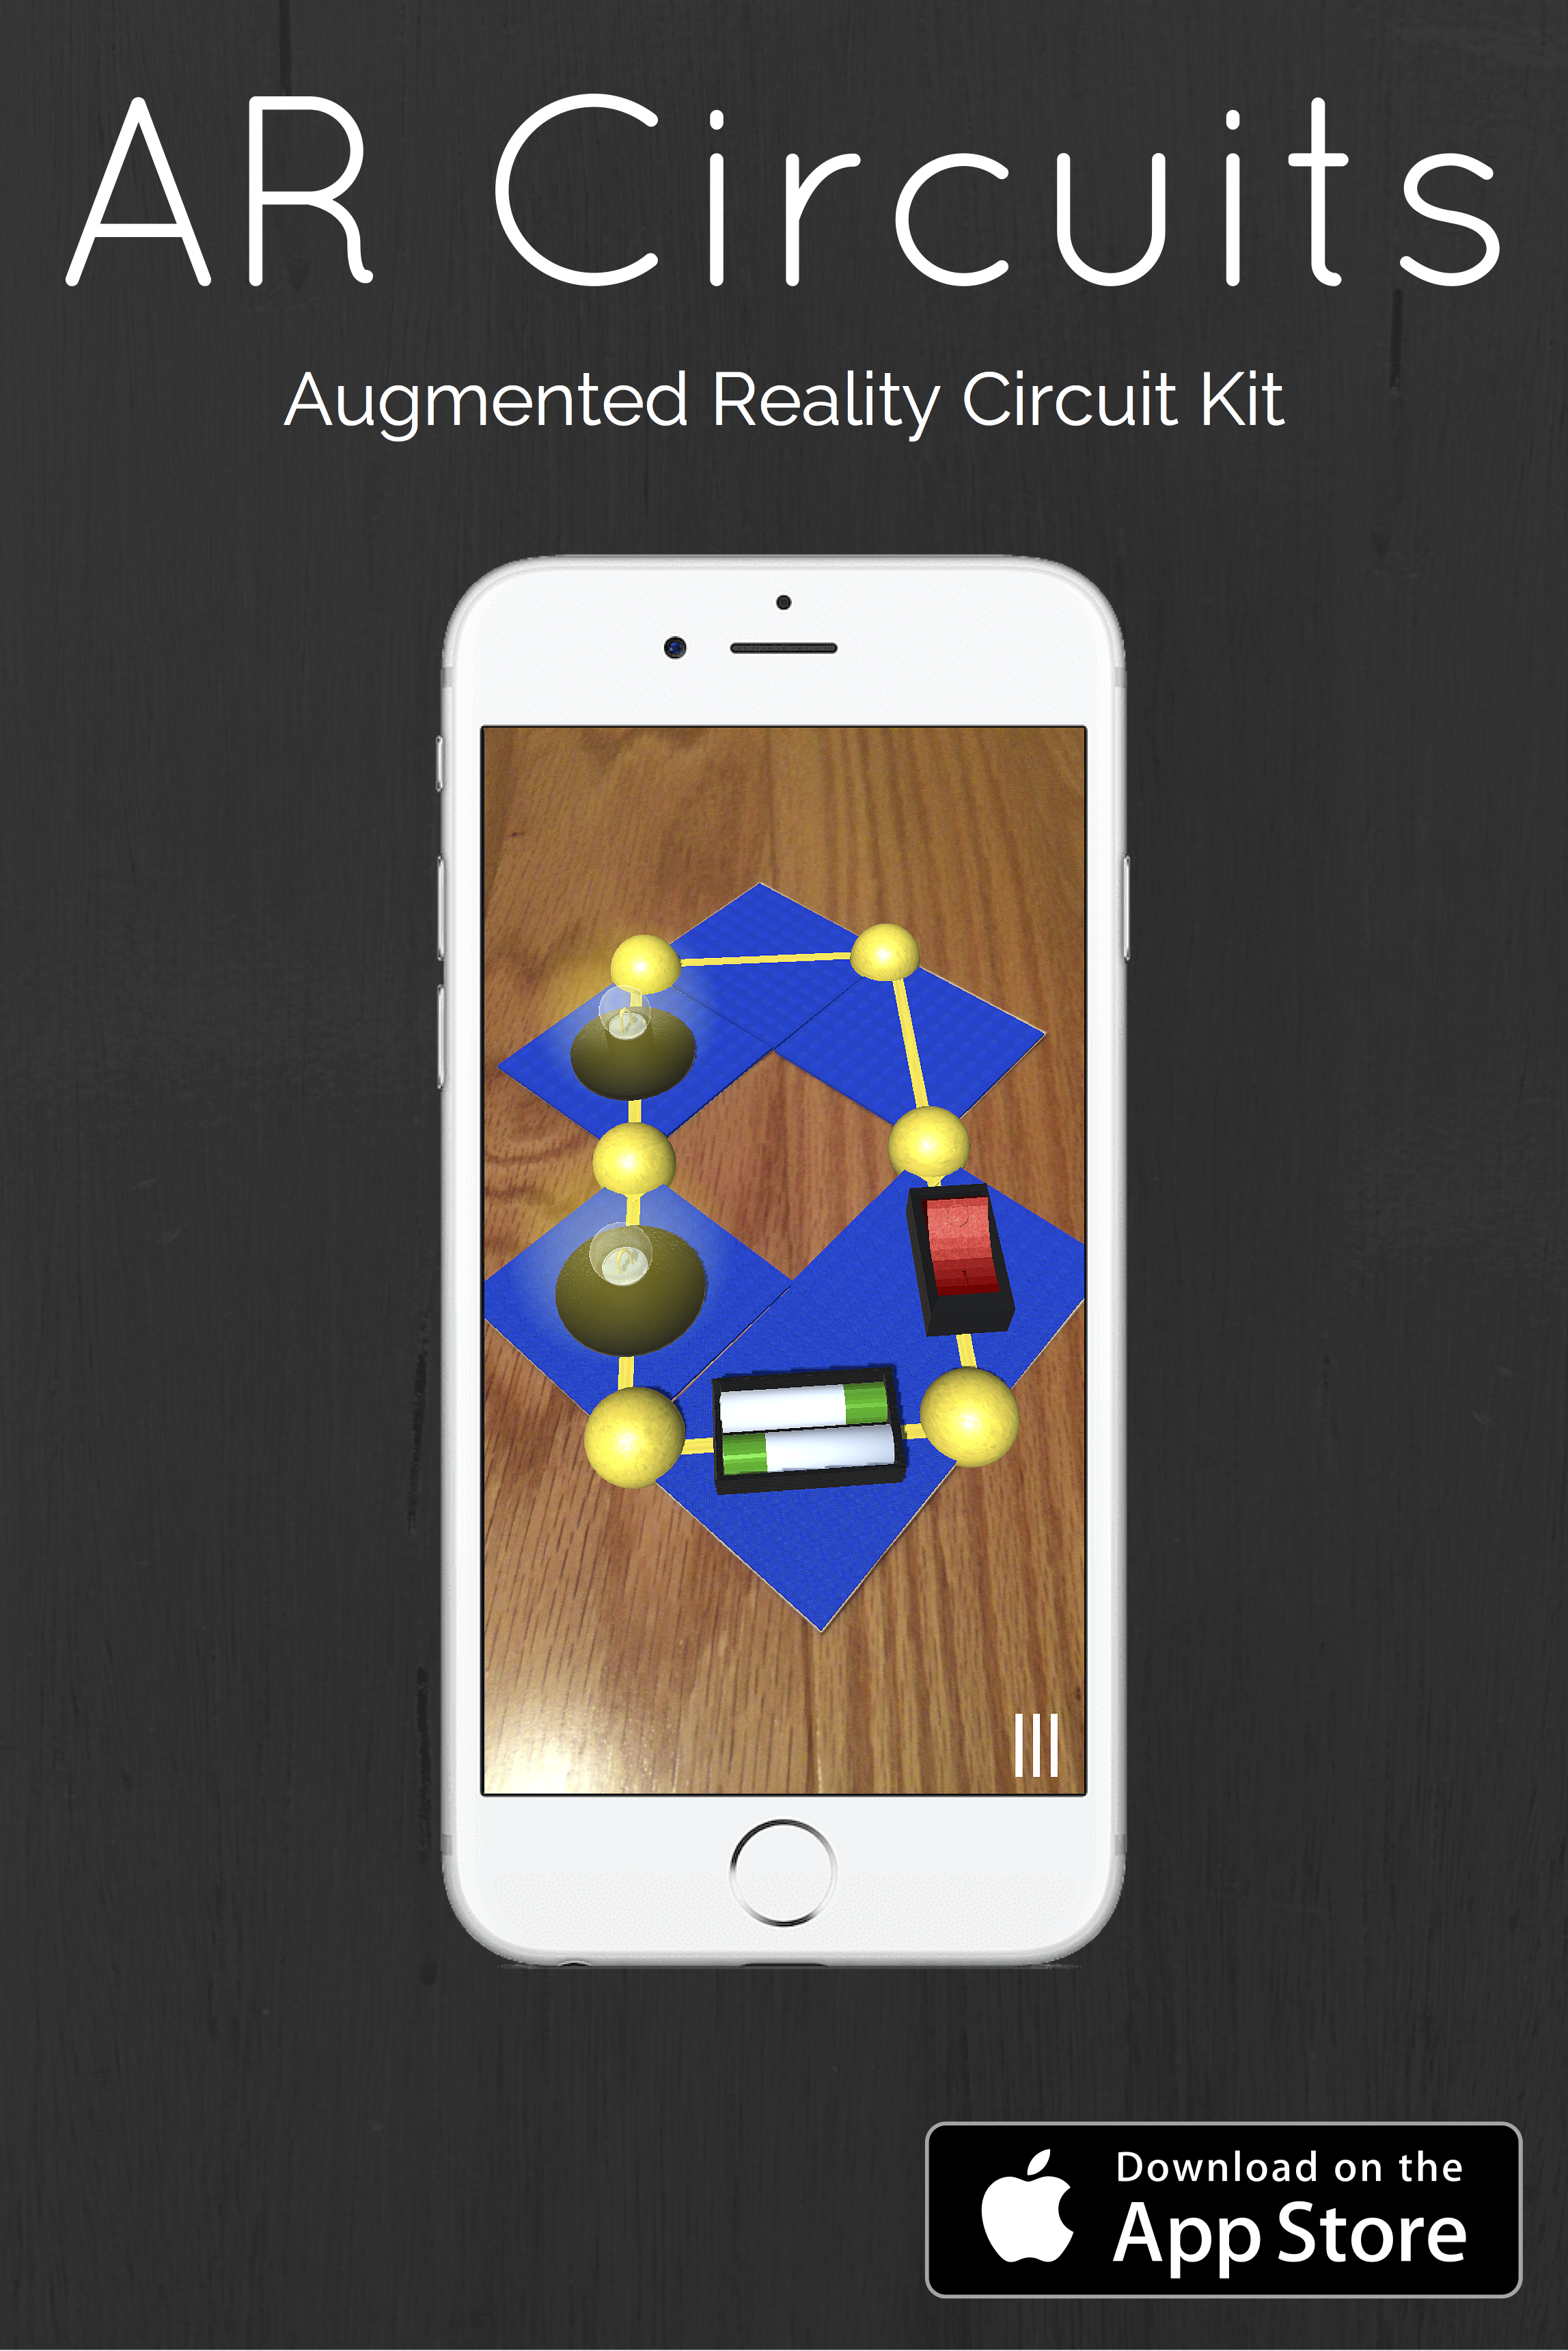 An Electric Circuit Kit In App Made Possible With Augmented Model Circuits Reality Technology Students Can Practice Building Without The Equipment